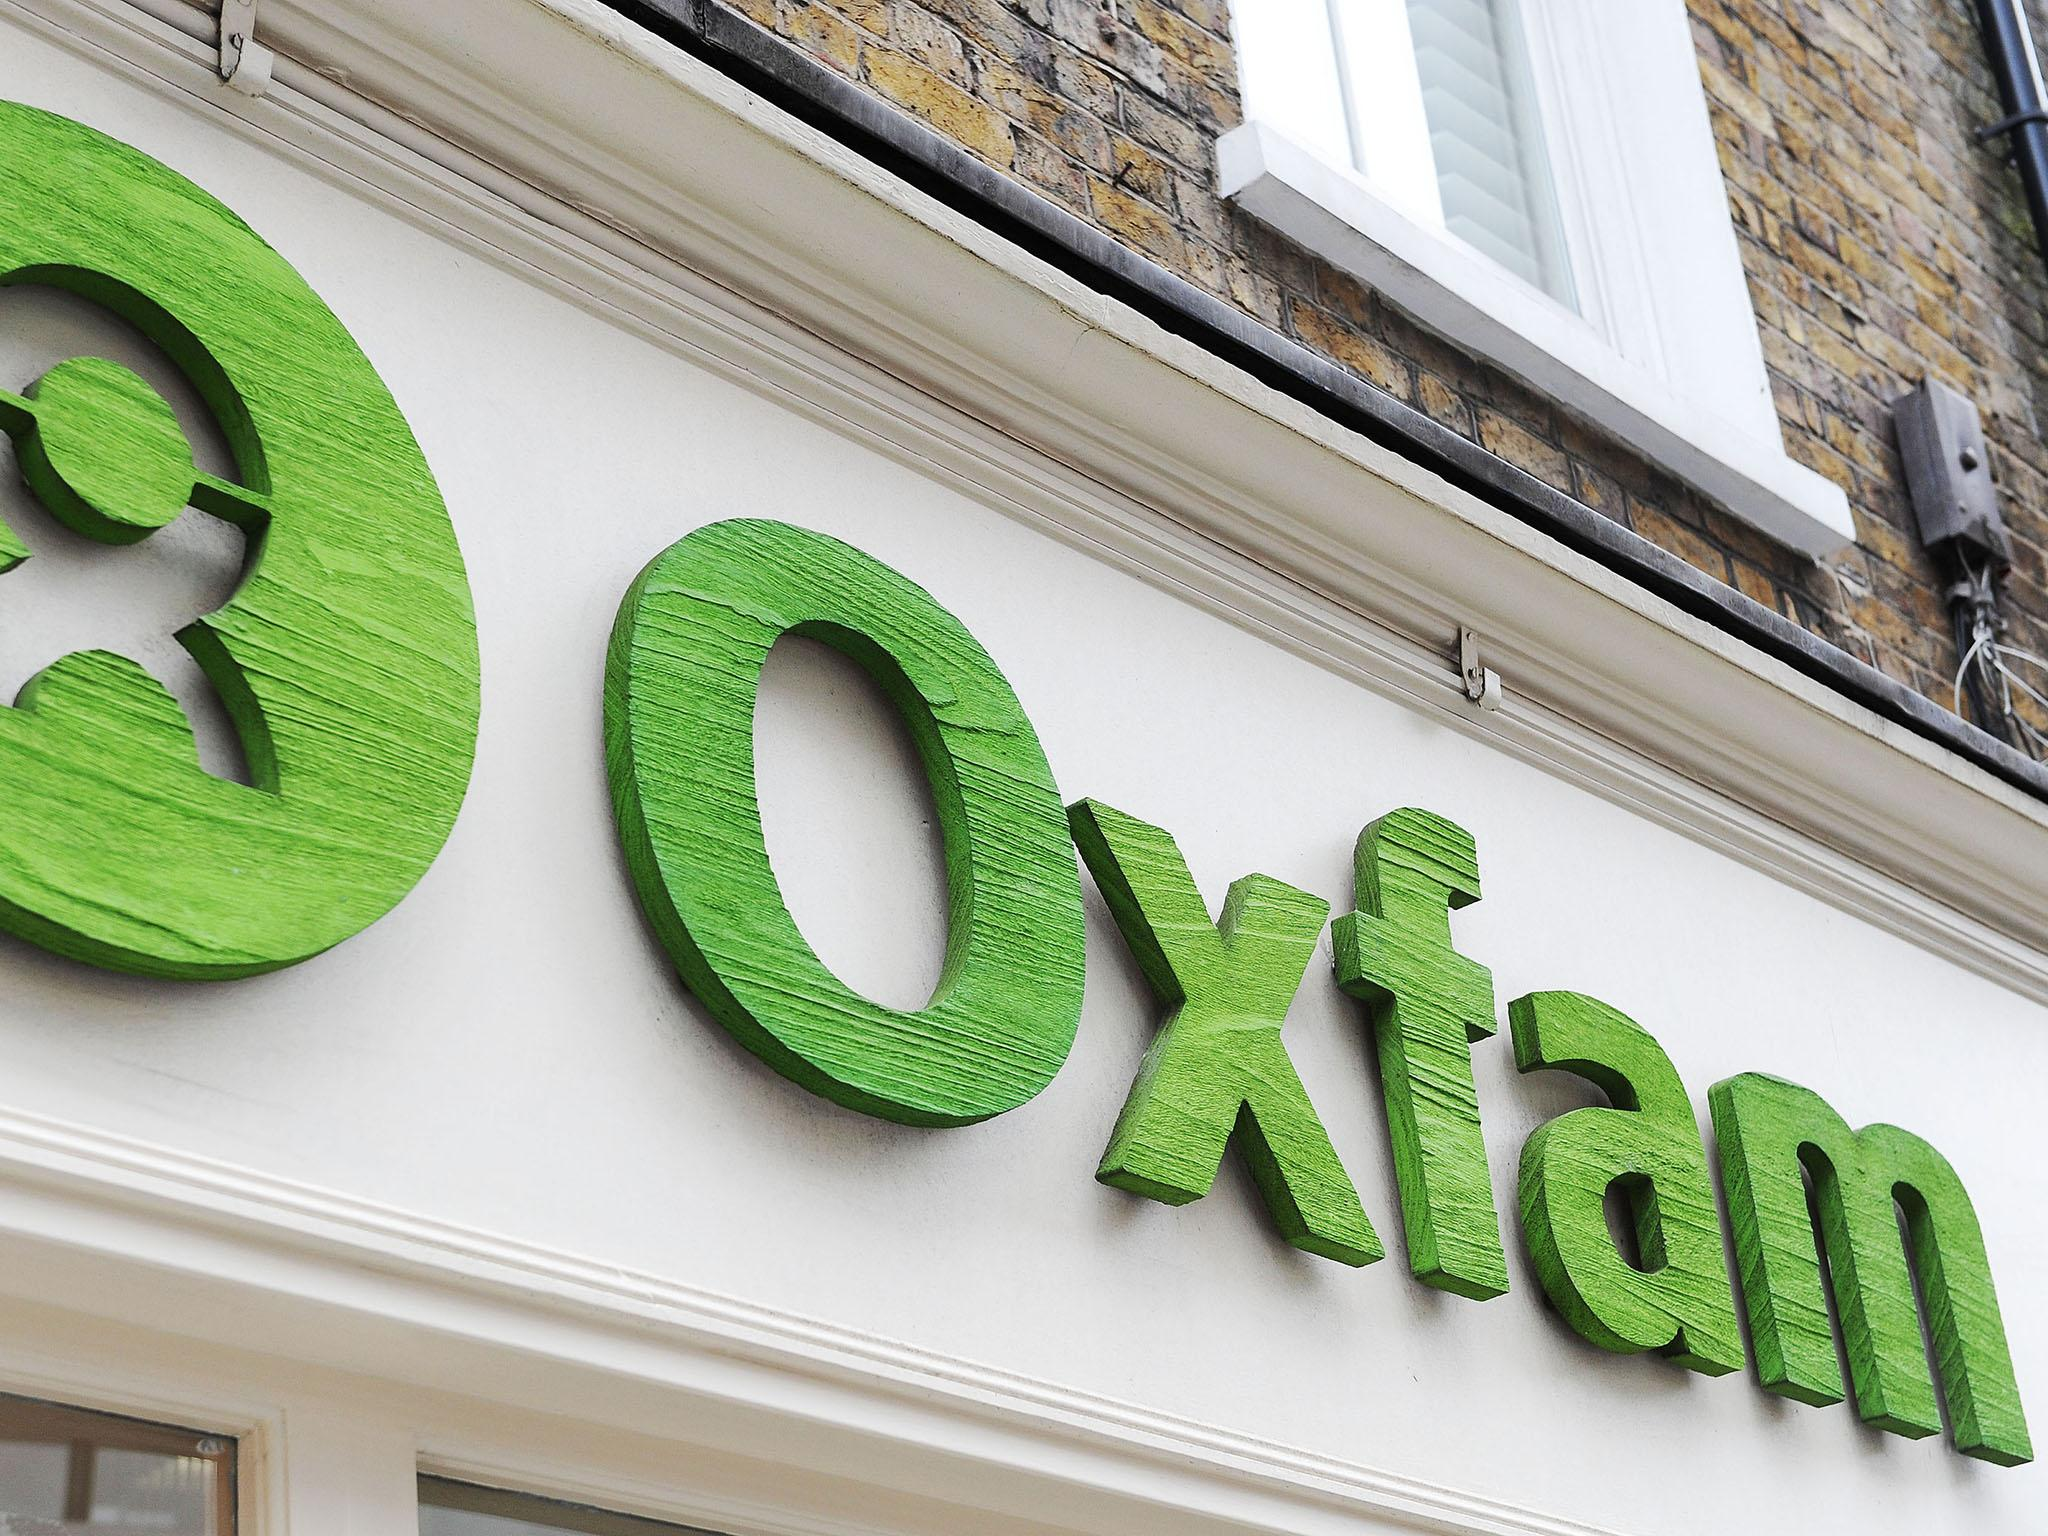 We must continue to fund Oxfam despite the Haiti scandal